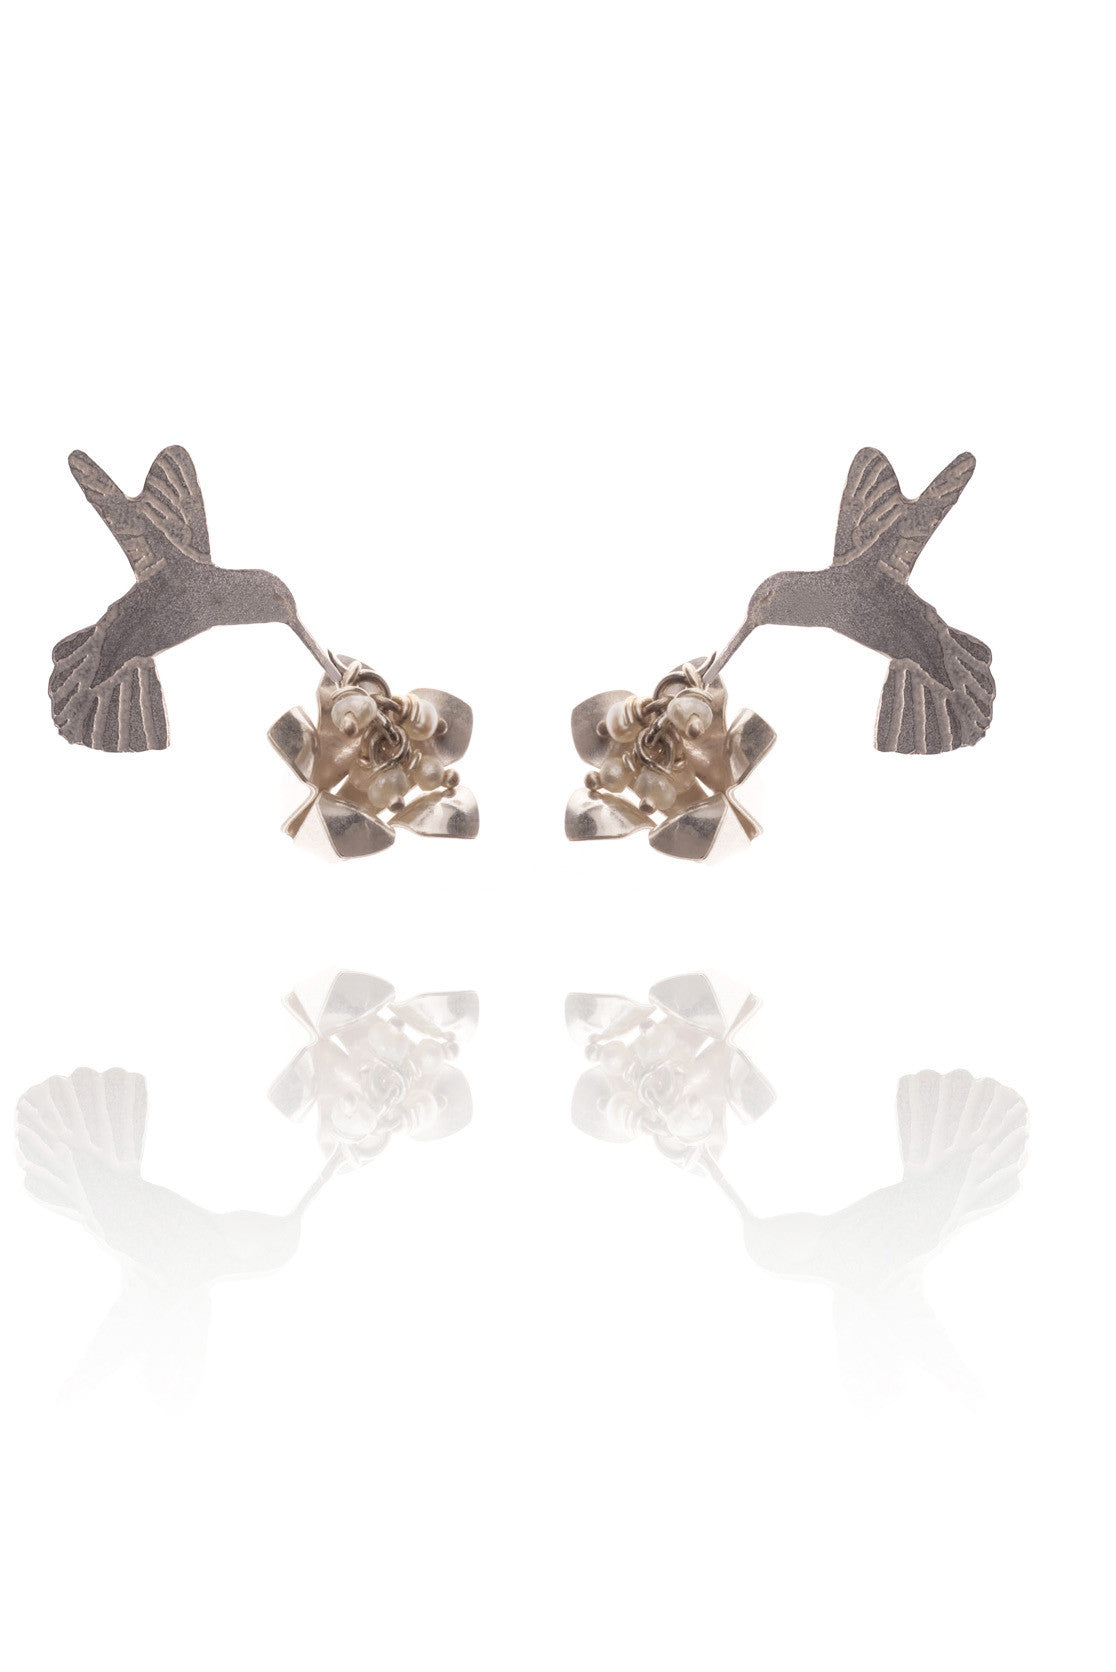 Humming Bird and Flower Earrings